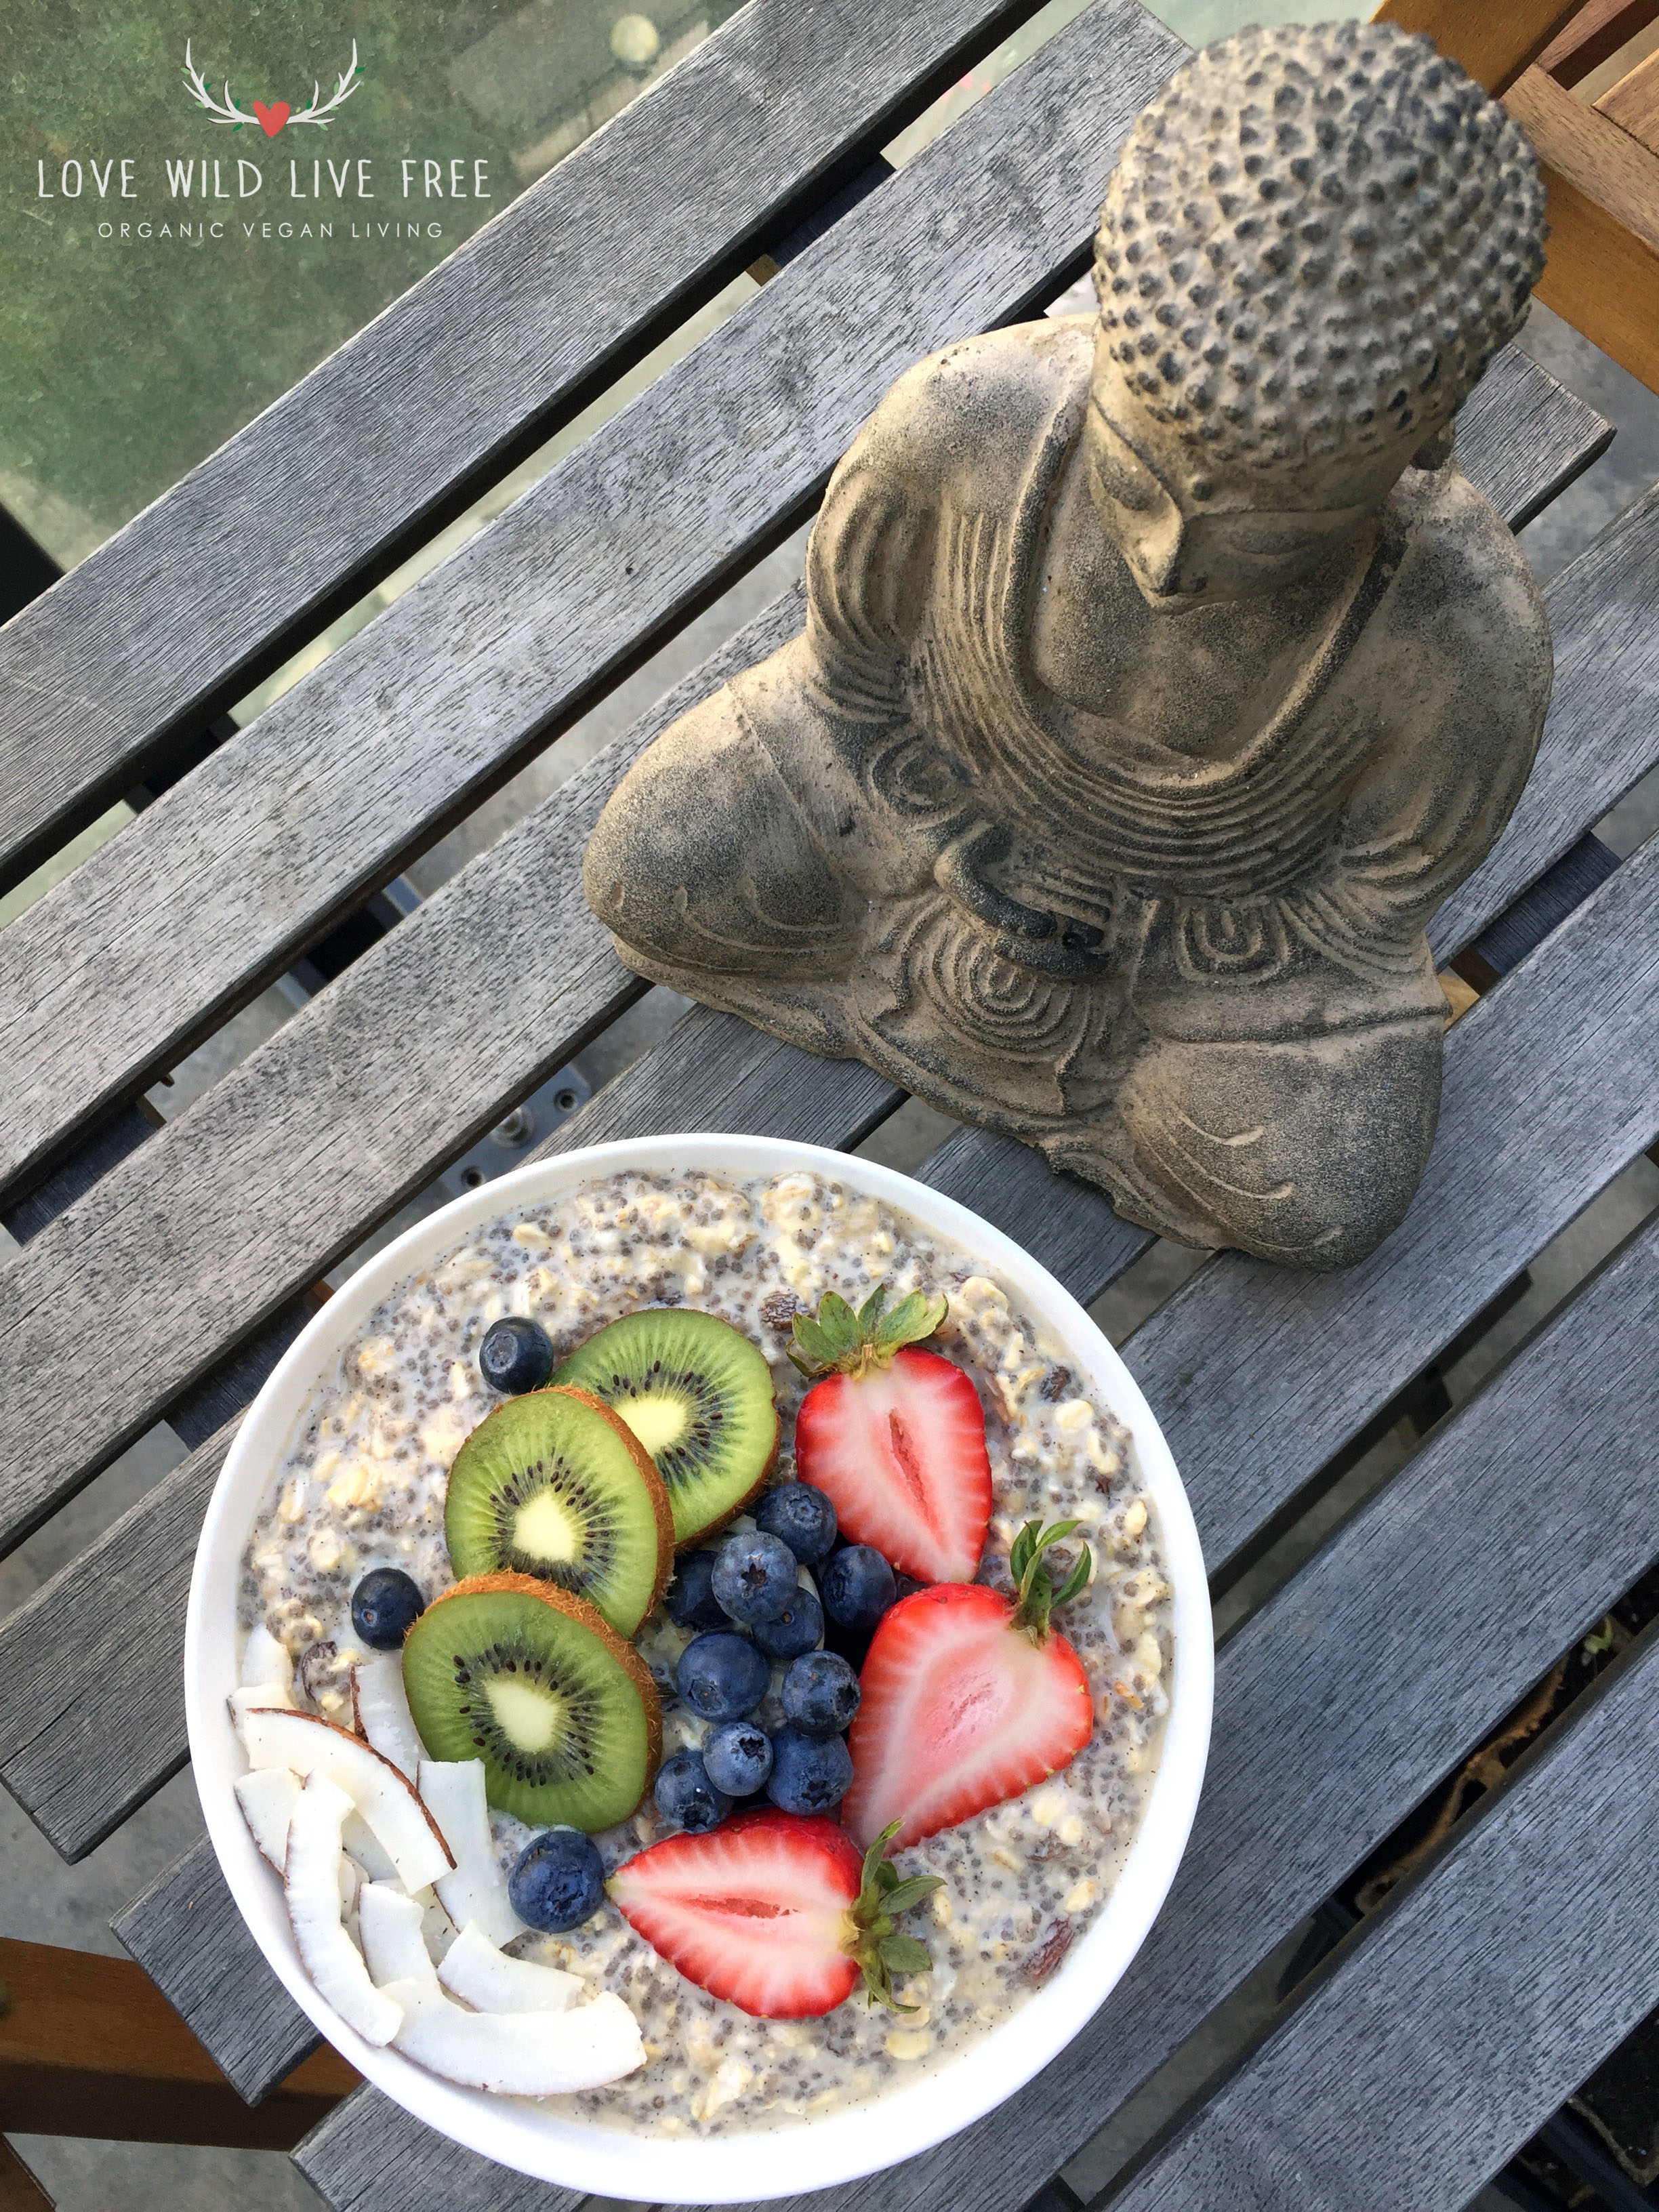 I enjoyed these Vanilla-Cinnamon Overnight Oats out in the sunshine, on in my patio garden.  Photo by Love Wild Live Free.